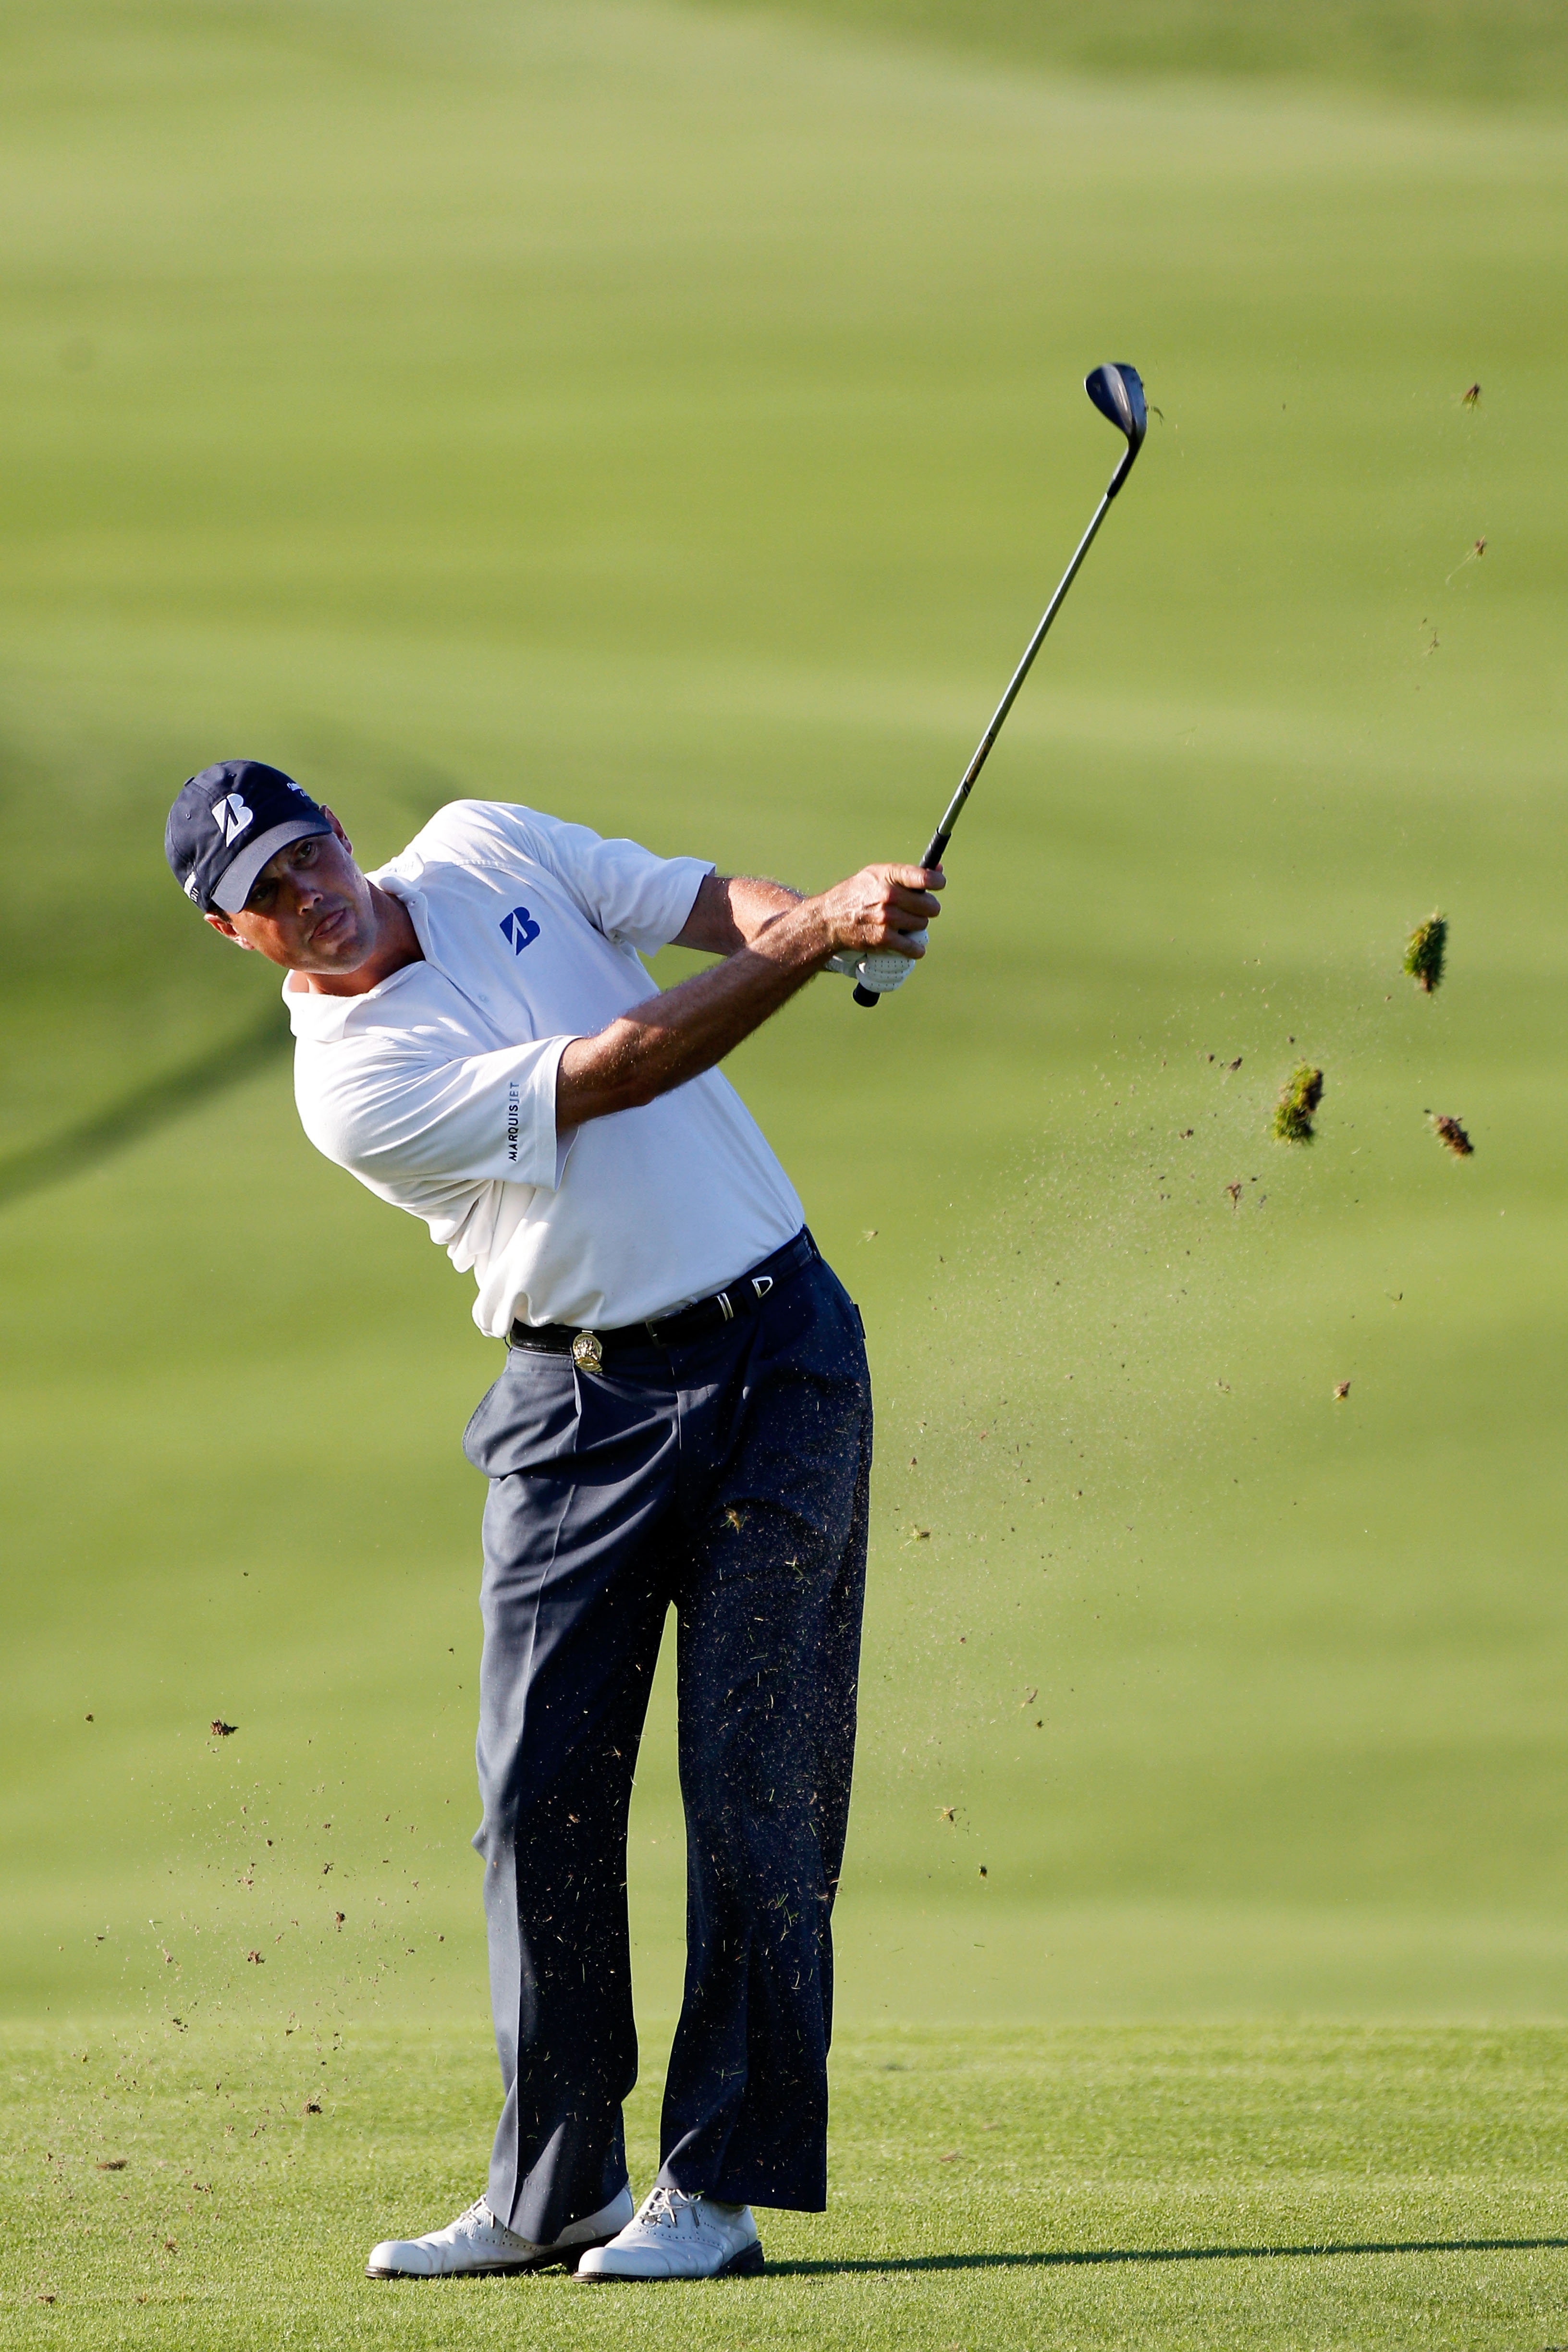 KOHLER, WI - AUGUST 14:  Matt Kuchar hits a shot during the third round of the 92nd PGA Championship on the Straits Course at Whistling Straits on August 14, 2010 in Kohler, Wisconsin.  (Photo by Sam Greenwood/Getty Images)